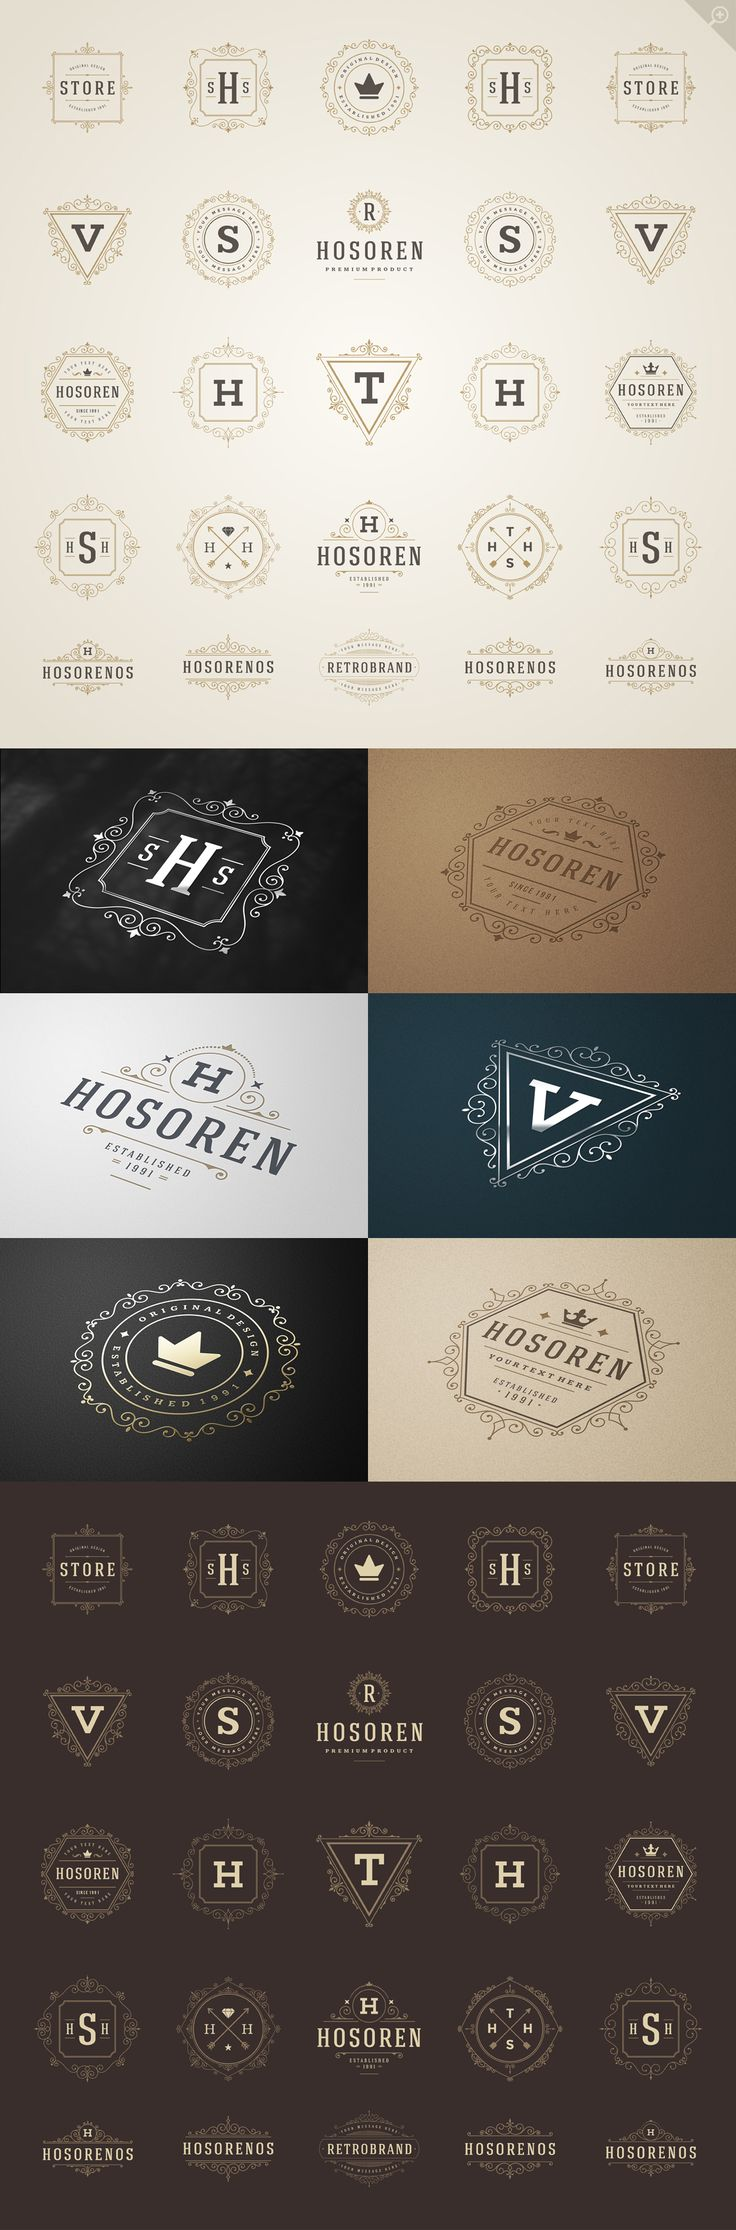 50 luxury ornaments logos & monograms, vintage and elegant for your next branding project